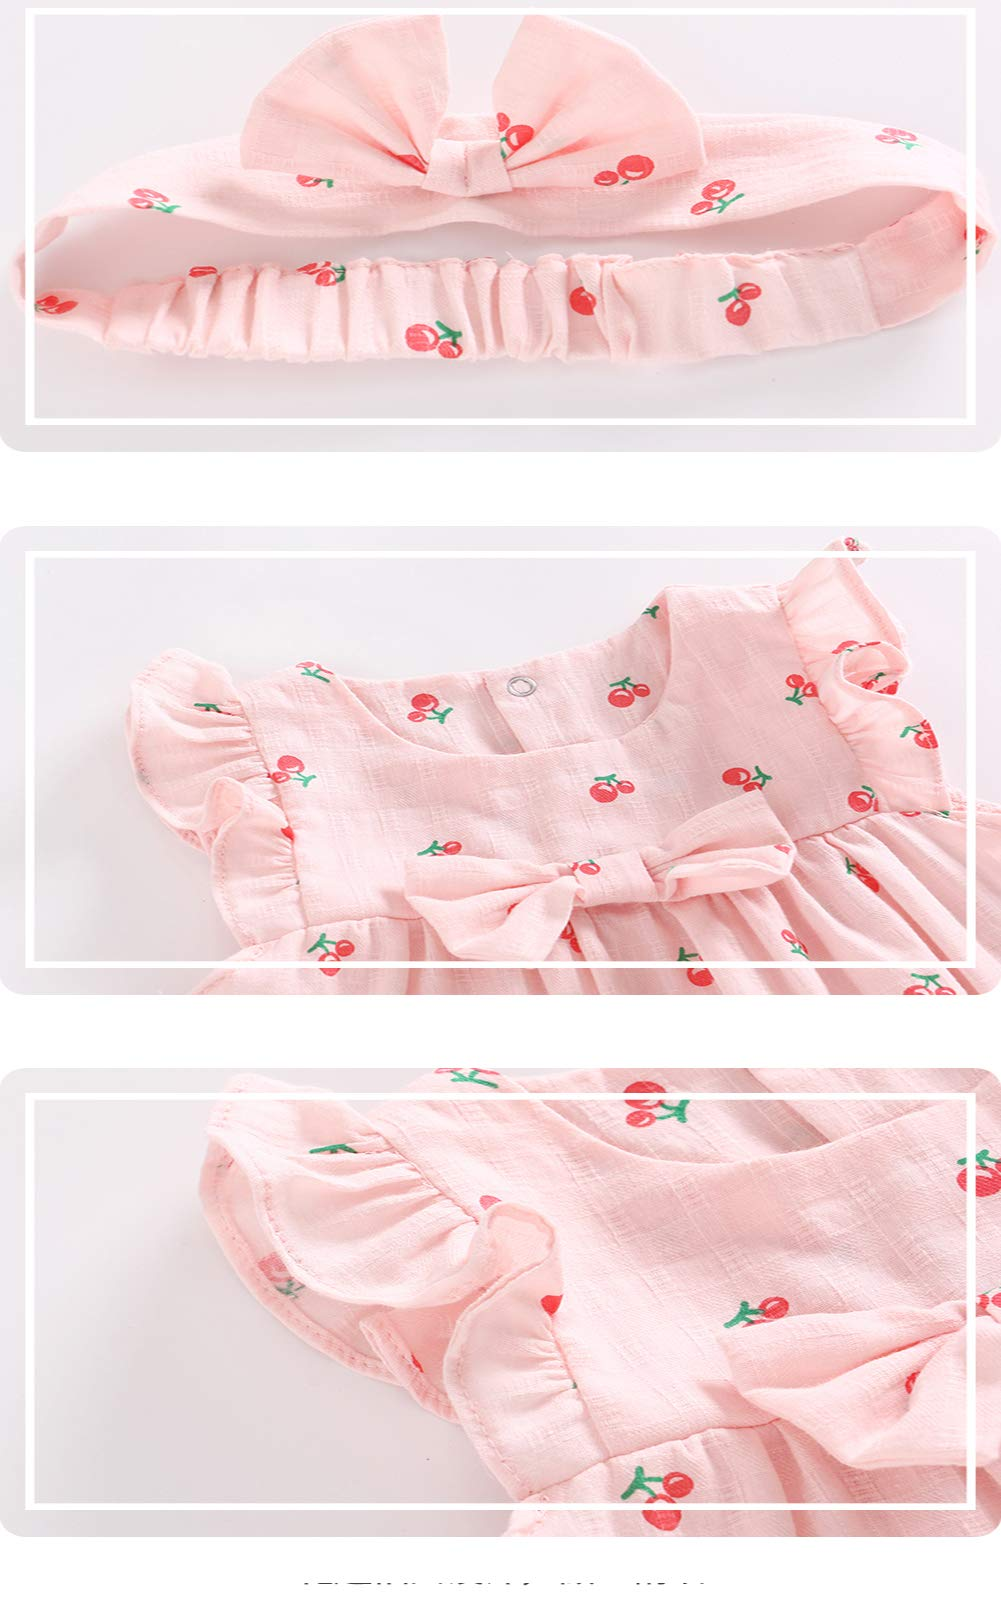 Feidoog Baby Girls Dress+Shorts Outfit with Bowknot Headband,Pink,12-18M by Feidoog (Image #5)